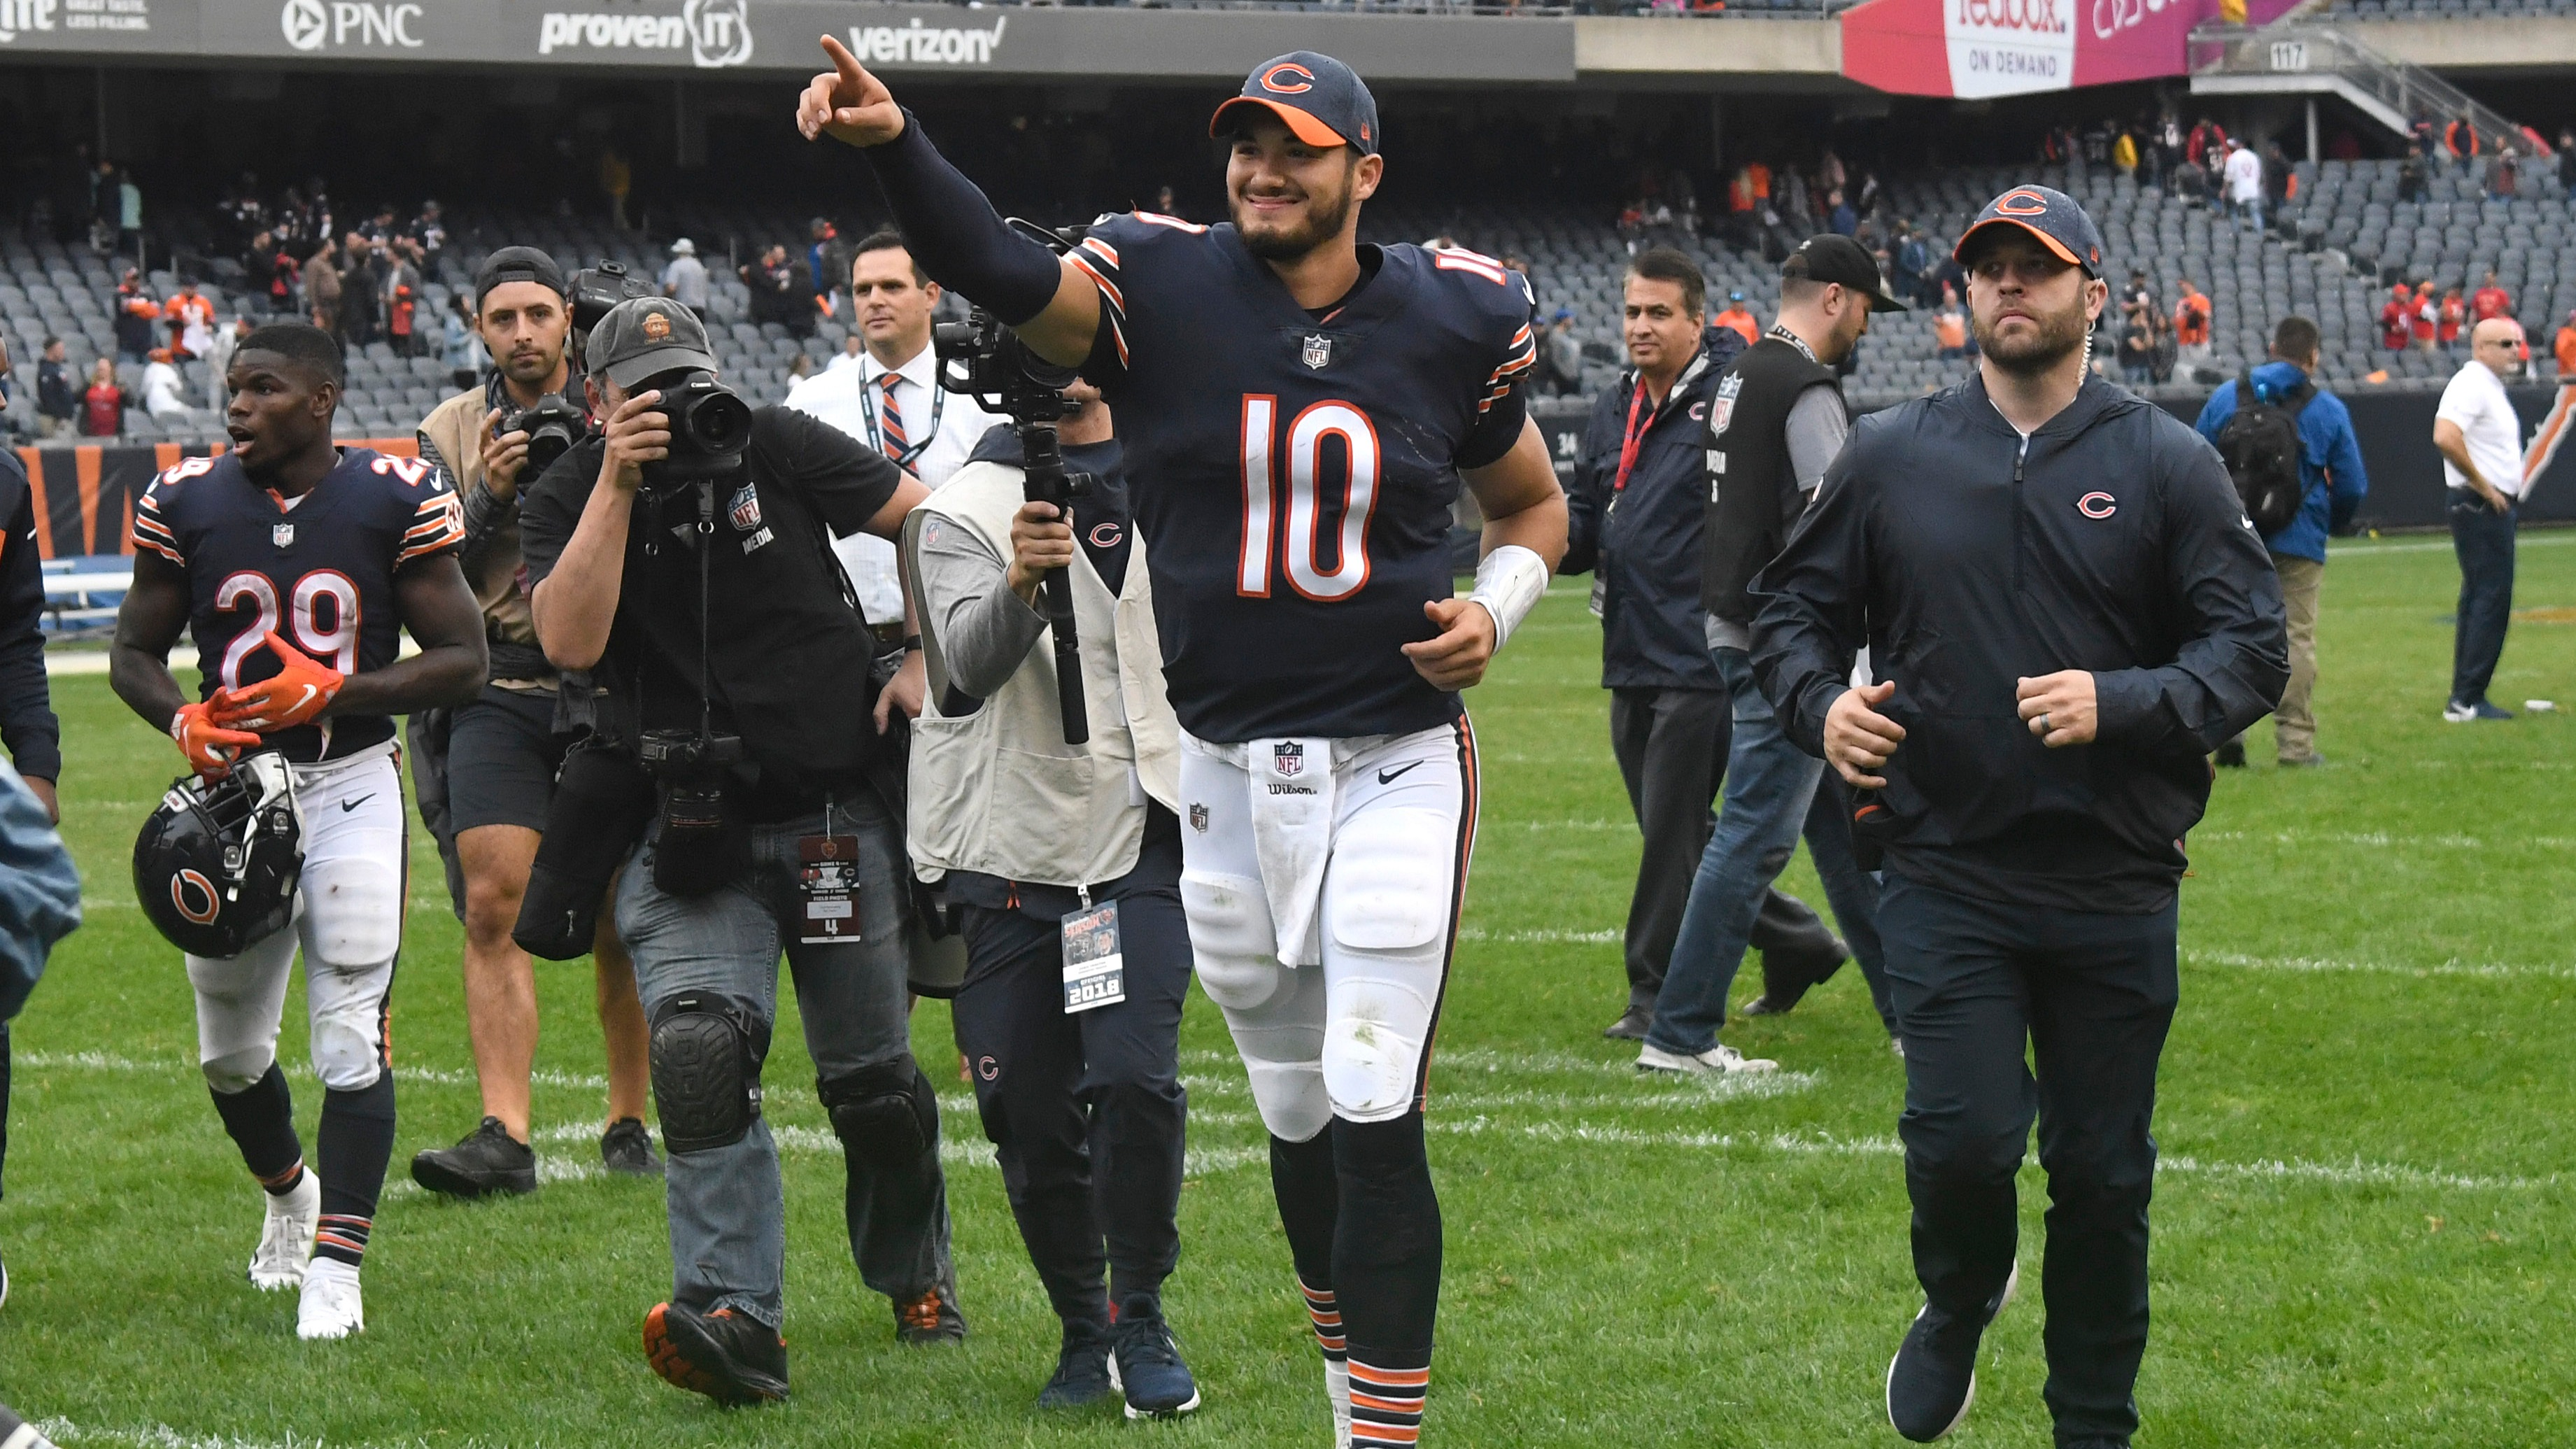 Gold Stars Trubisky Pops Off Tops Goff In Week 4 Wiring Money Pnc Chicagos Mitchell Had The Best Game Of His Young Career On Sunday And He Opened A Lot Fantasy Owners Eyes Process